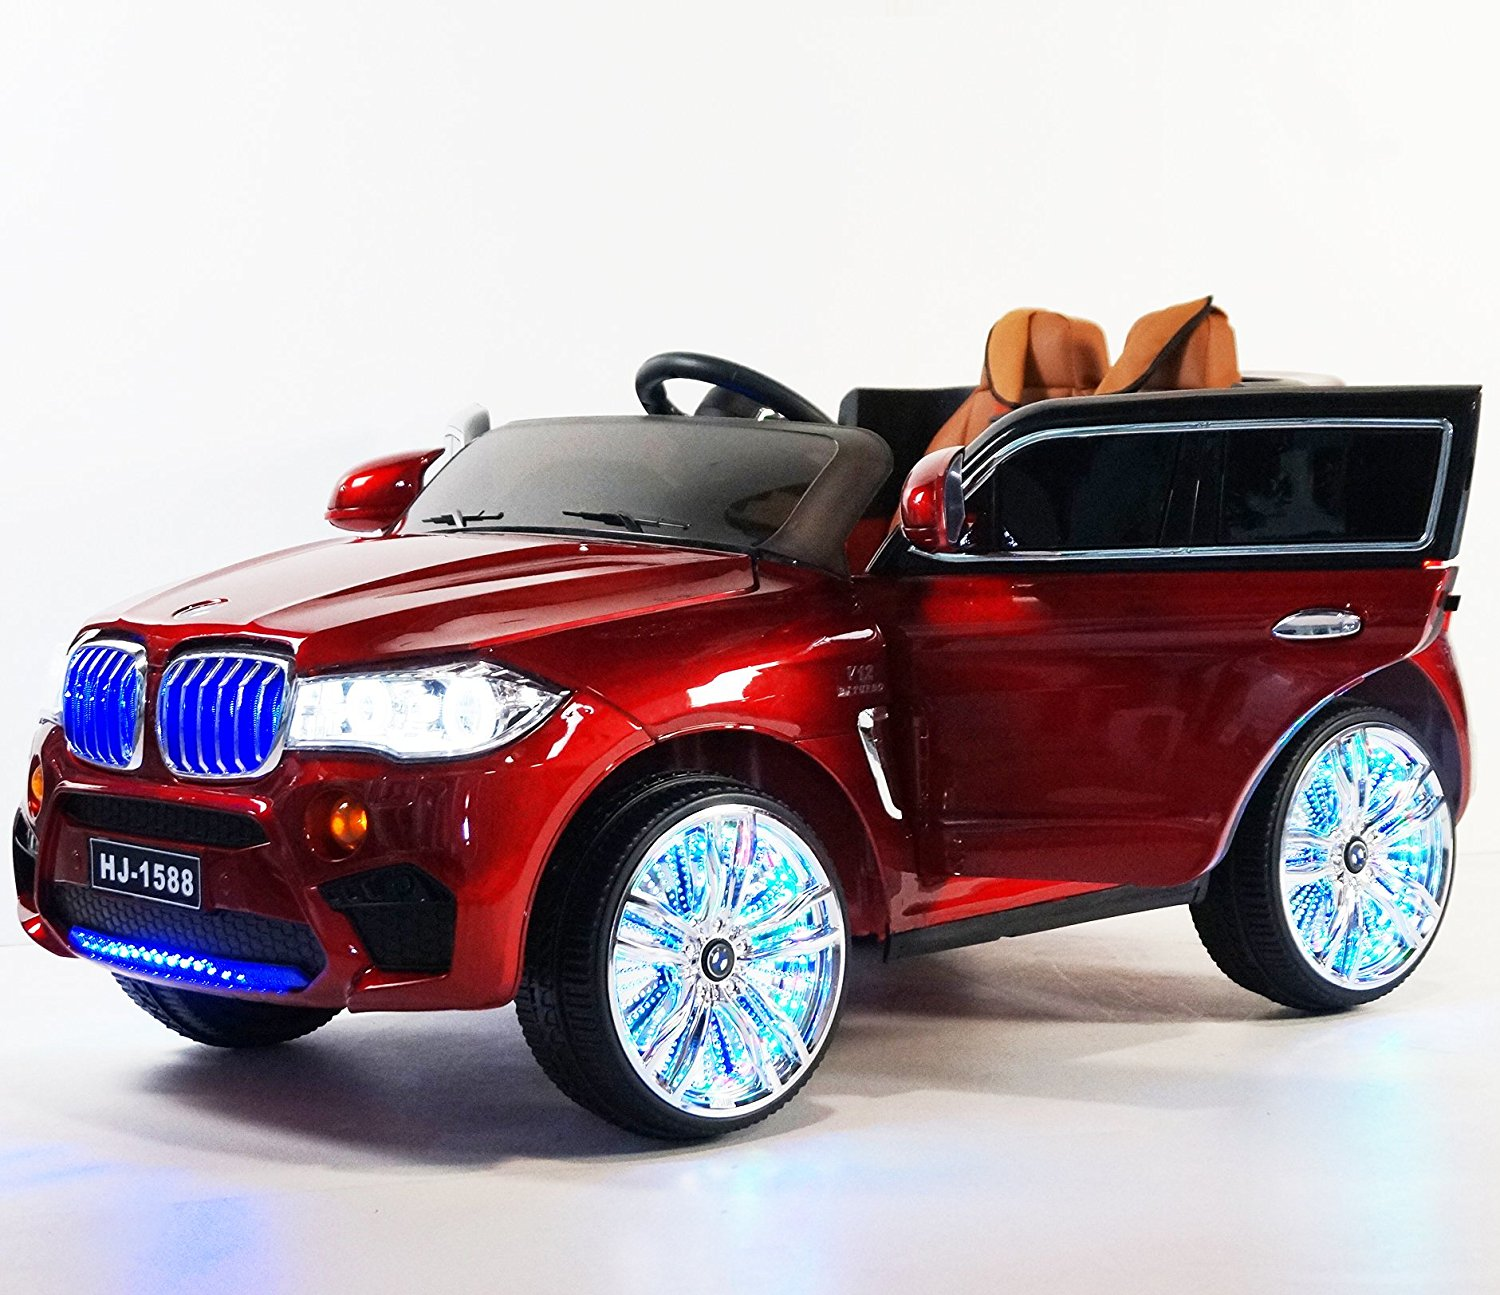 buy luxury edition bmw x5 suv style 12v, leather seat, lights, mp3